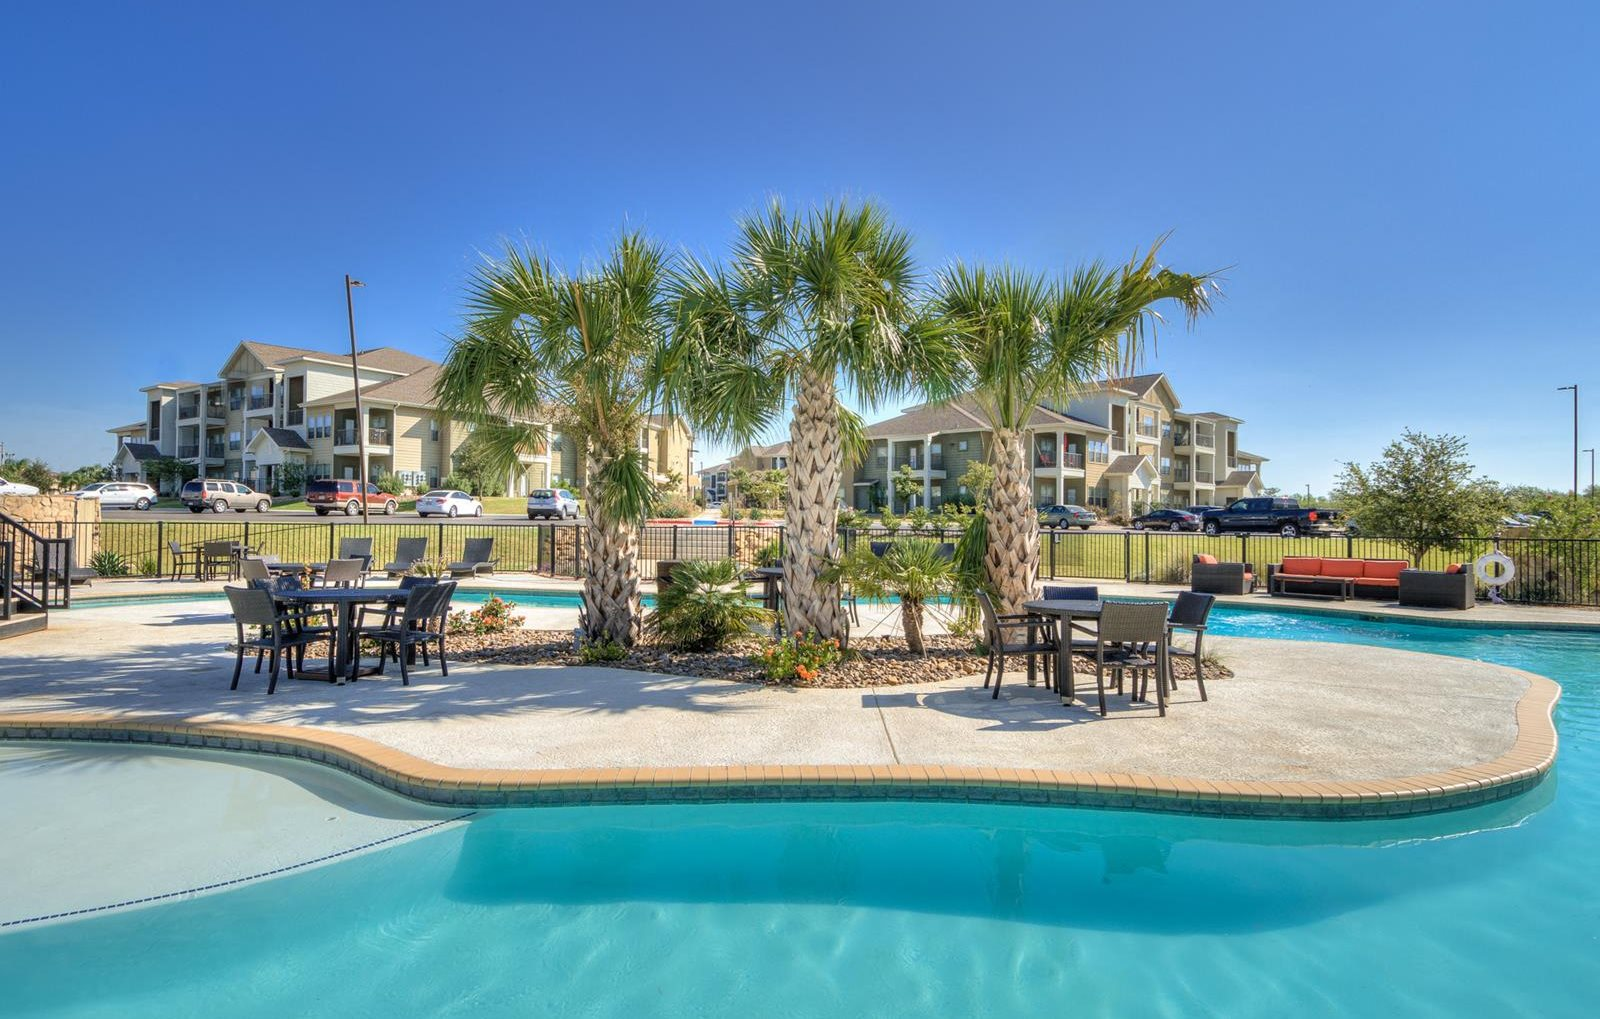 Luxury Apartments Pool. Relaxing Lazy River Style Pool at La Contessa Luxury Apartments  Laredo Texas in TX